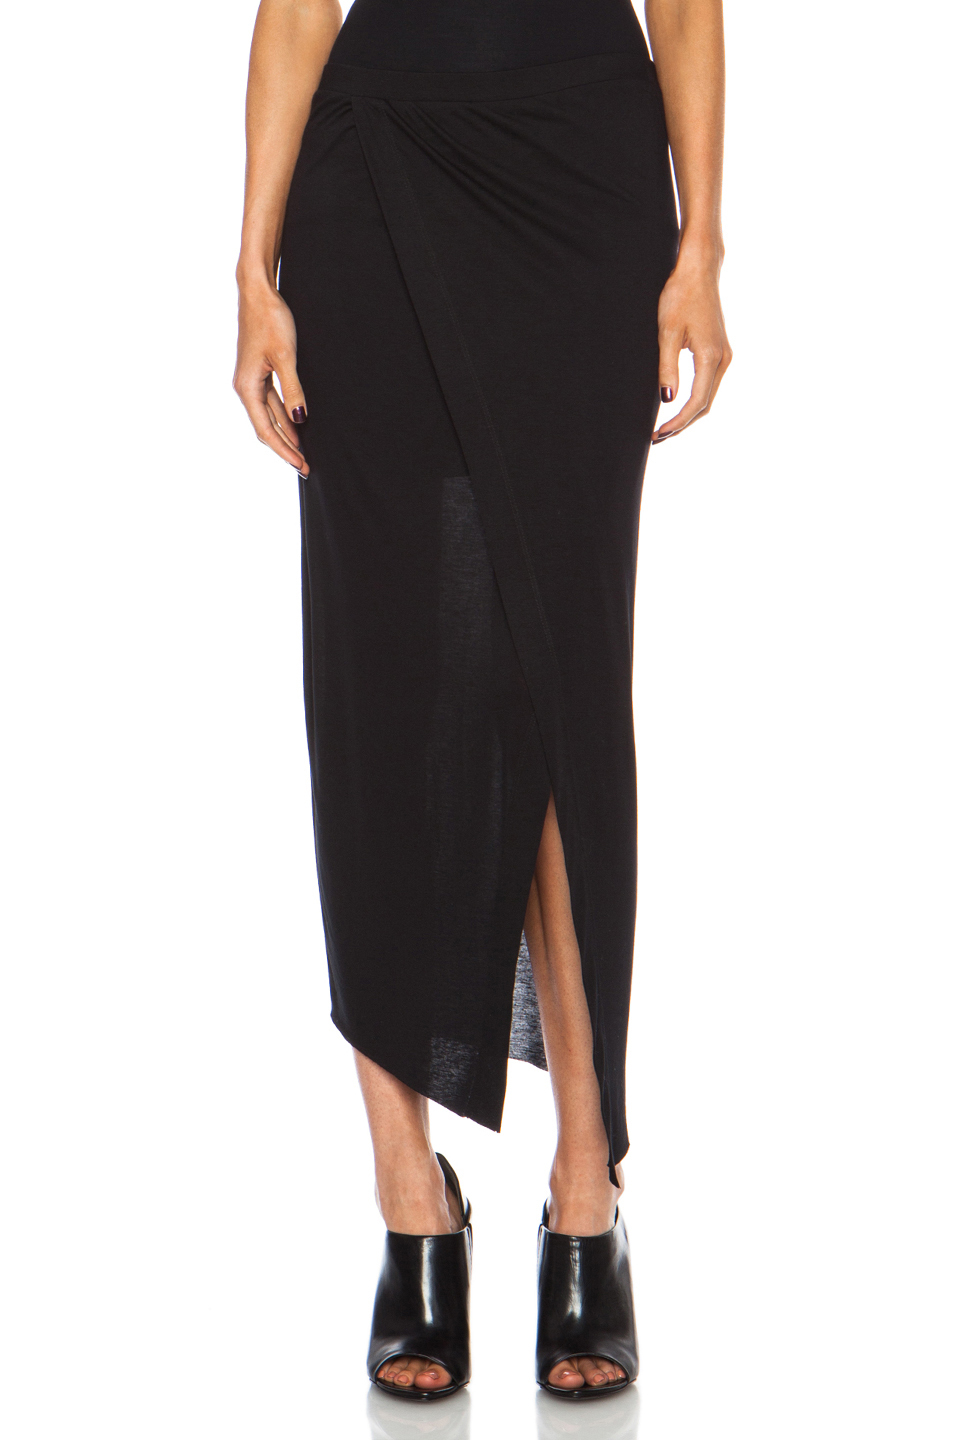 Helmut lang Kinetic Jersey Long Wrap Skirt in Black | Lyst